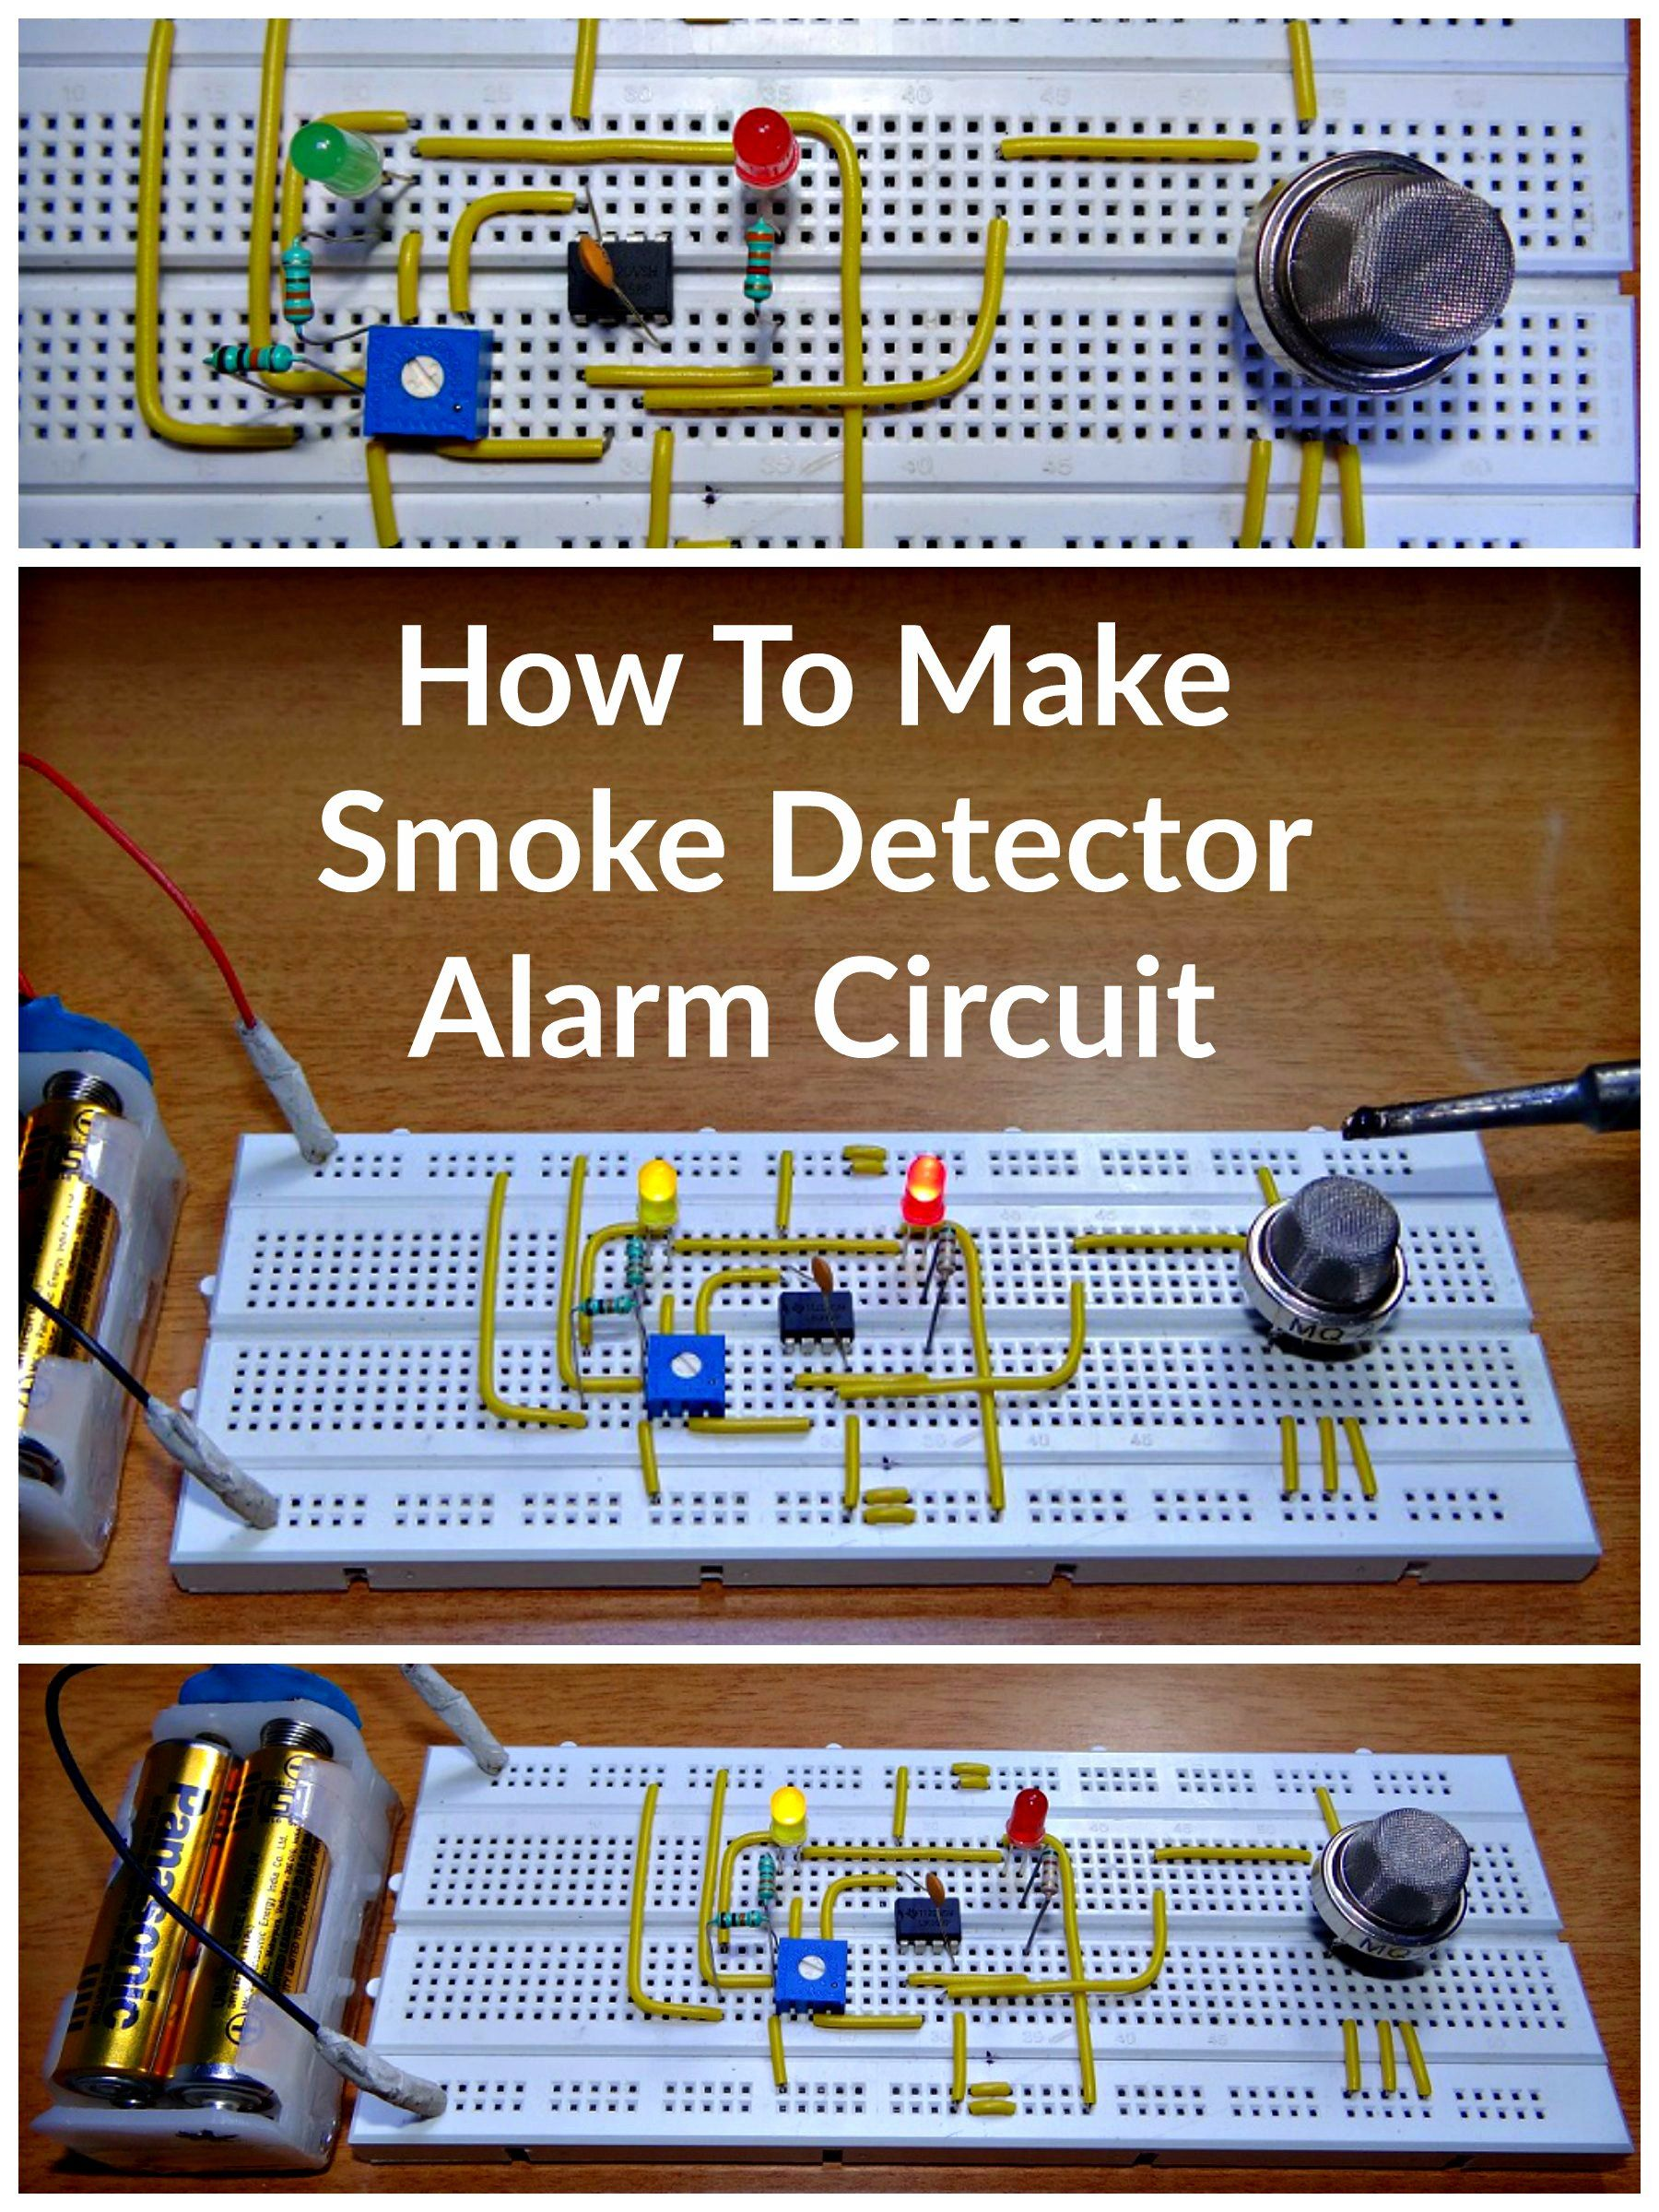 How To Make Smoke Detector Alarm Circuit Arduino Pinterest Relay Circuits By Photo Transistor Electronic Projects Electronics Engineering